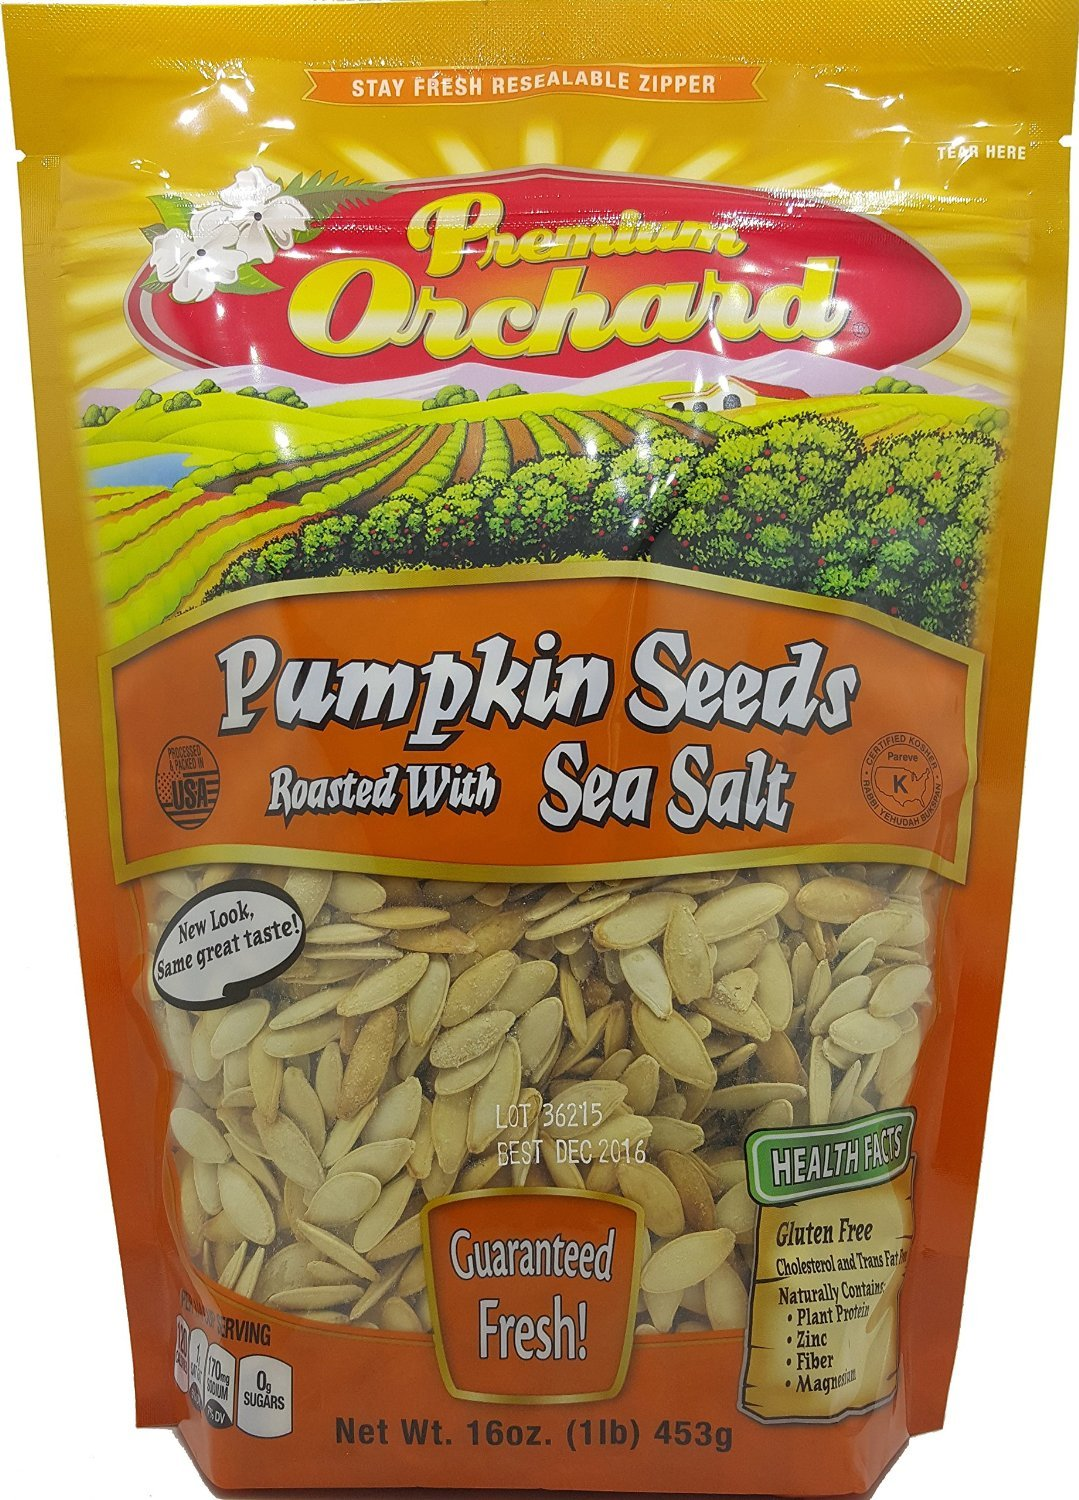 Premium Orchard Pumpkin Seeds Roasted With Sea Salt (1 LB) by Premium Orchard